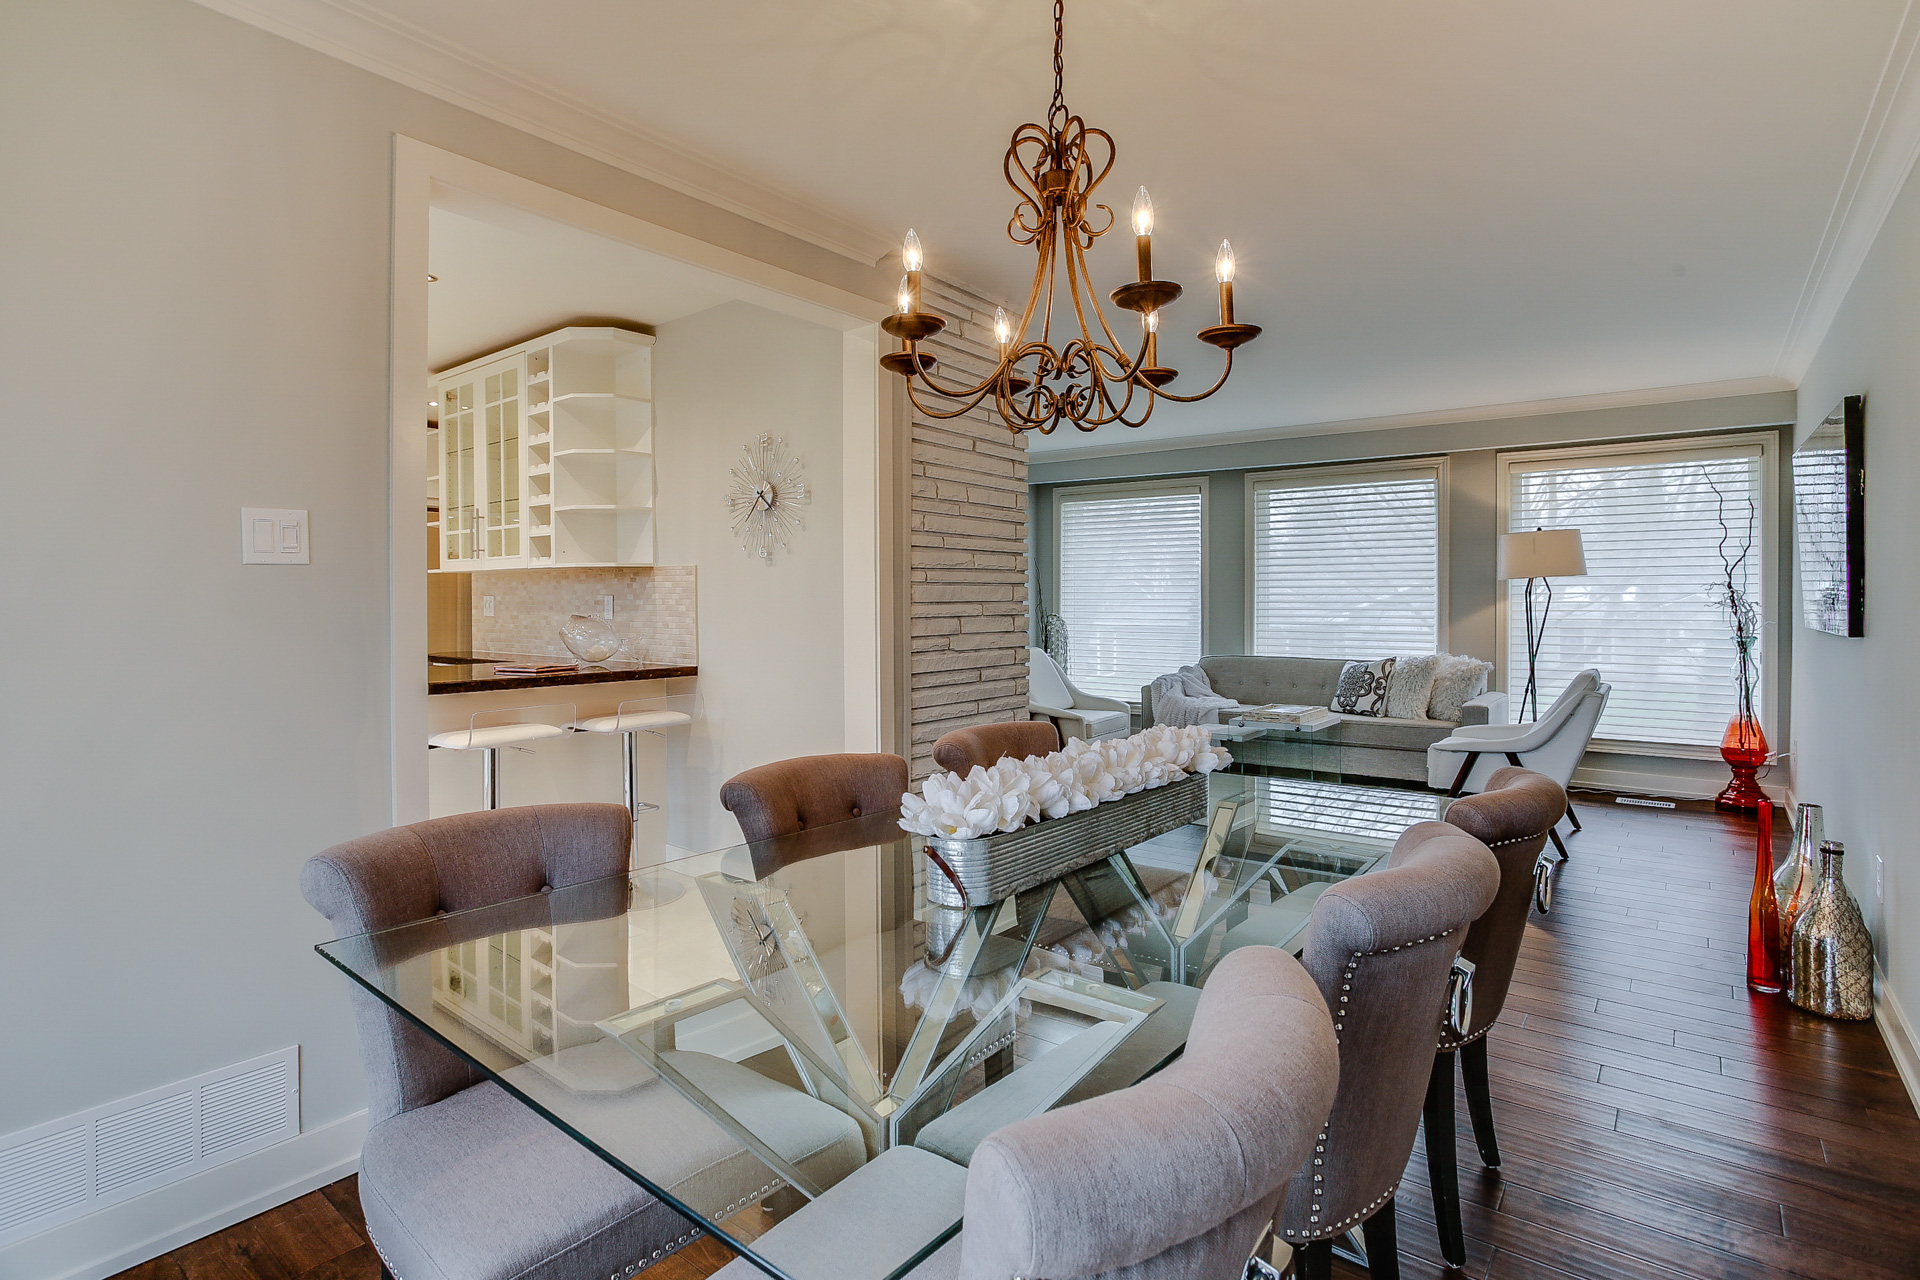 Dining Room, Living Room and Kitchen, 26 Boxbury, Etobicoke Home Staging